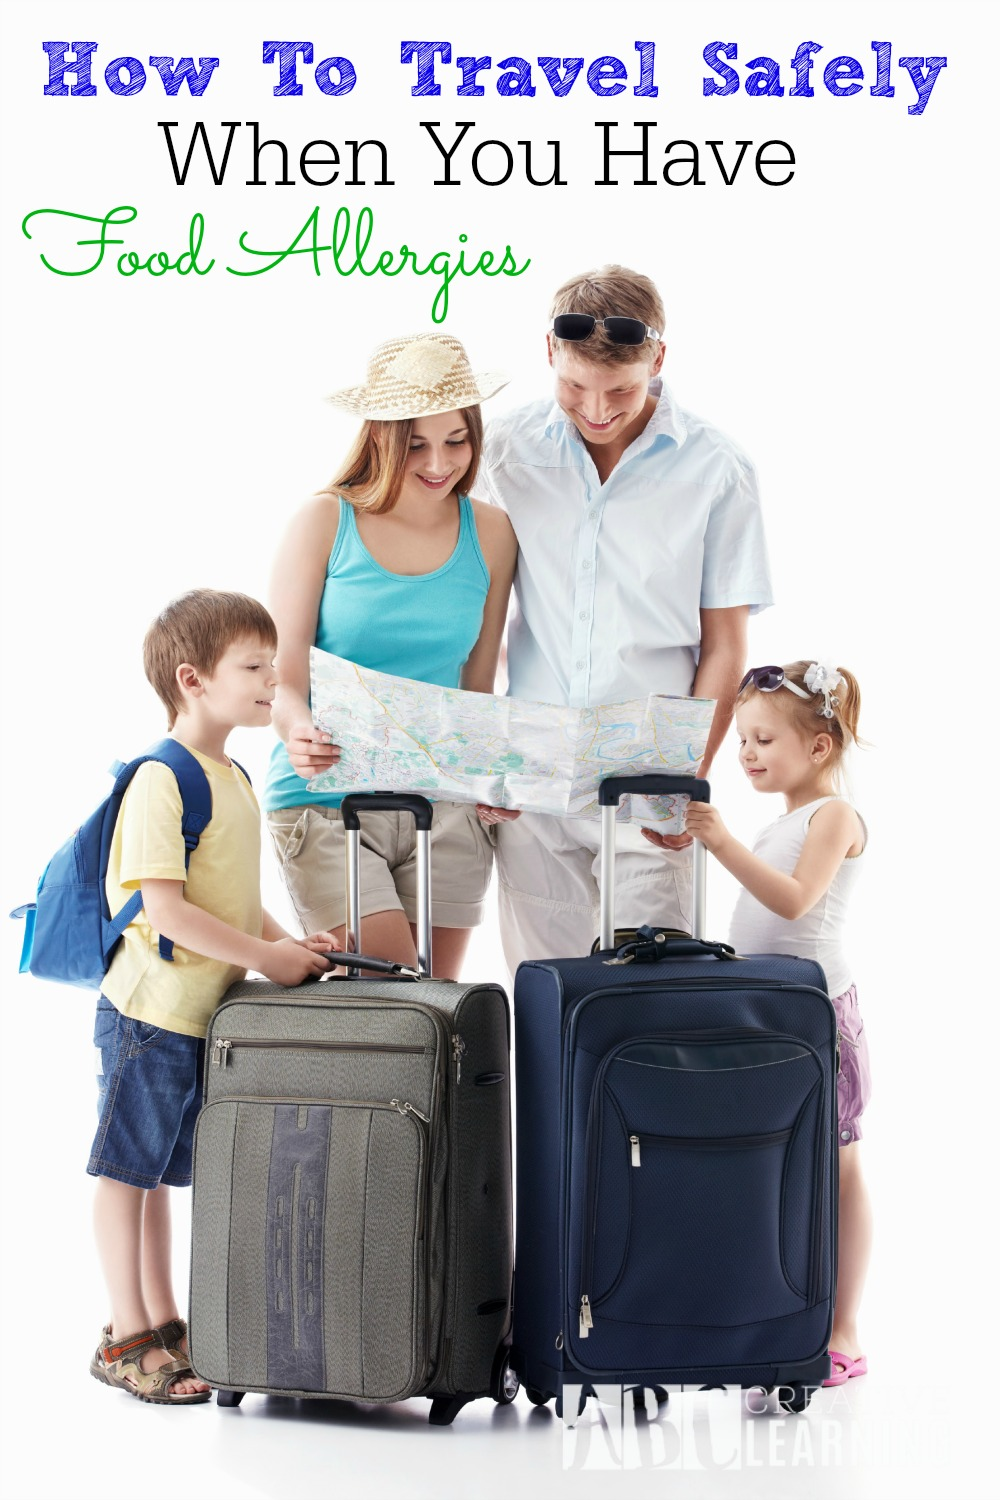 How to Travel Safely When You Have Food Allergies can be done with preparation. - abccreativelearning.com